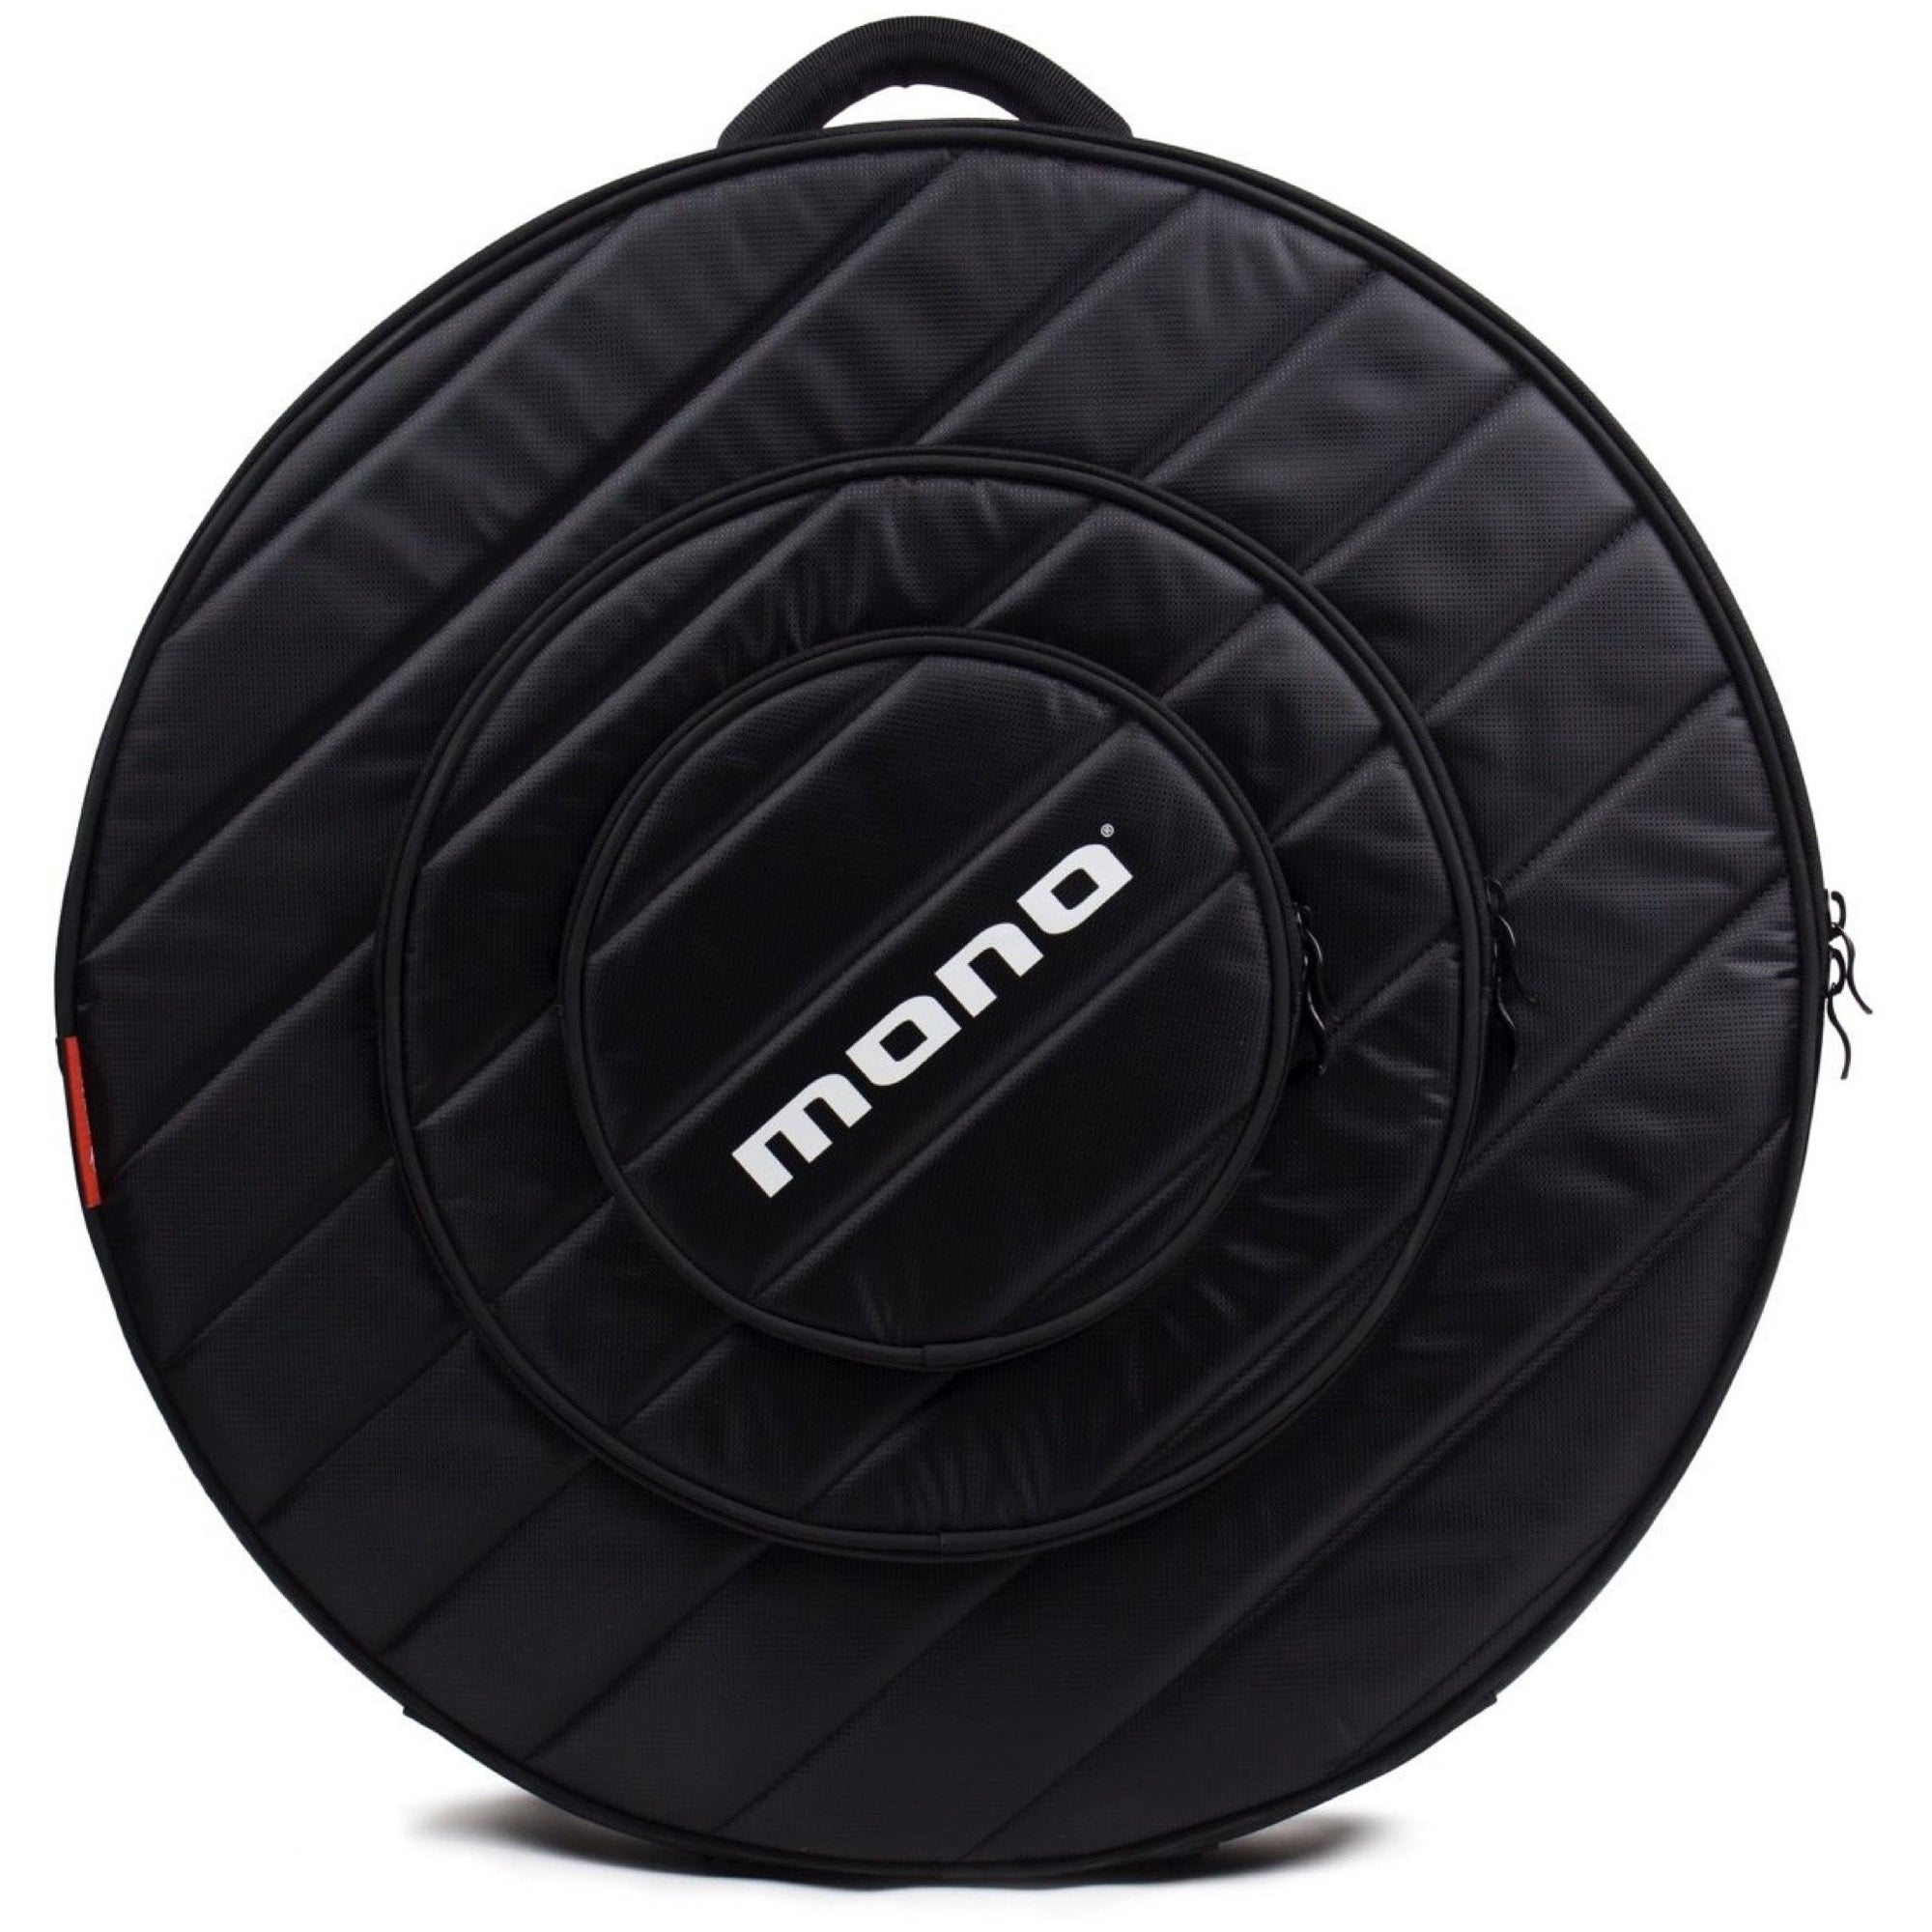 Mono Cymbal 24 Bag, Black, 24 Inch